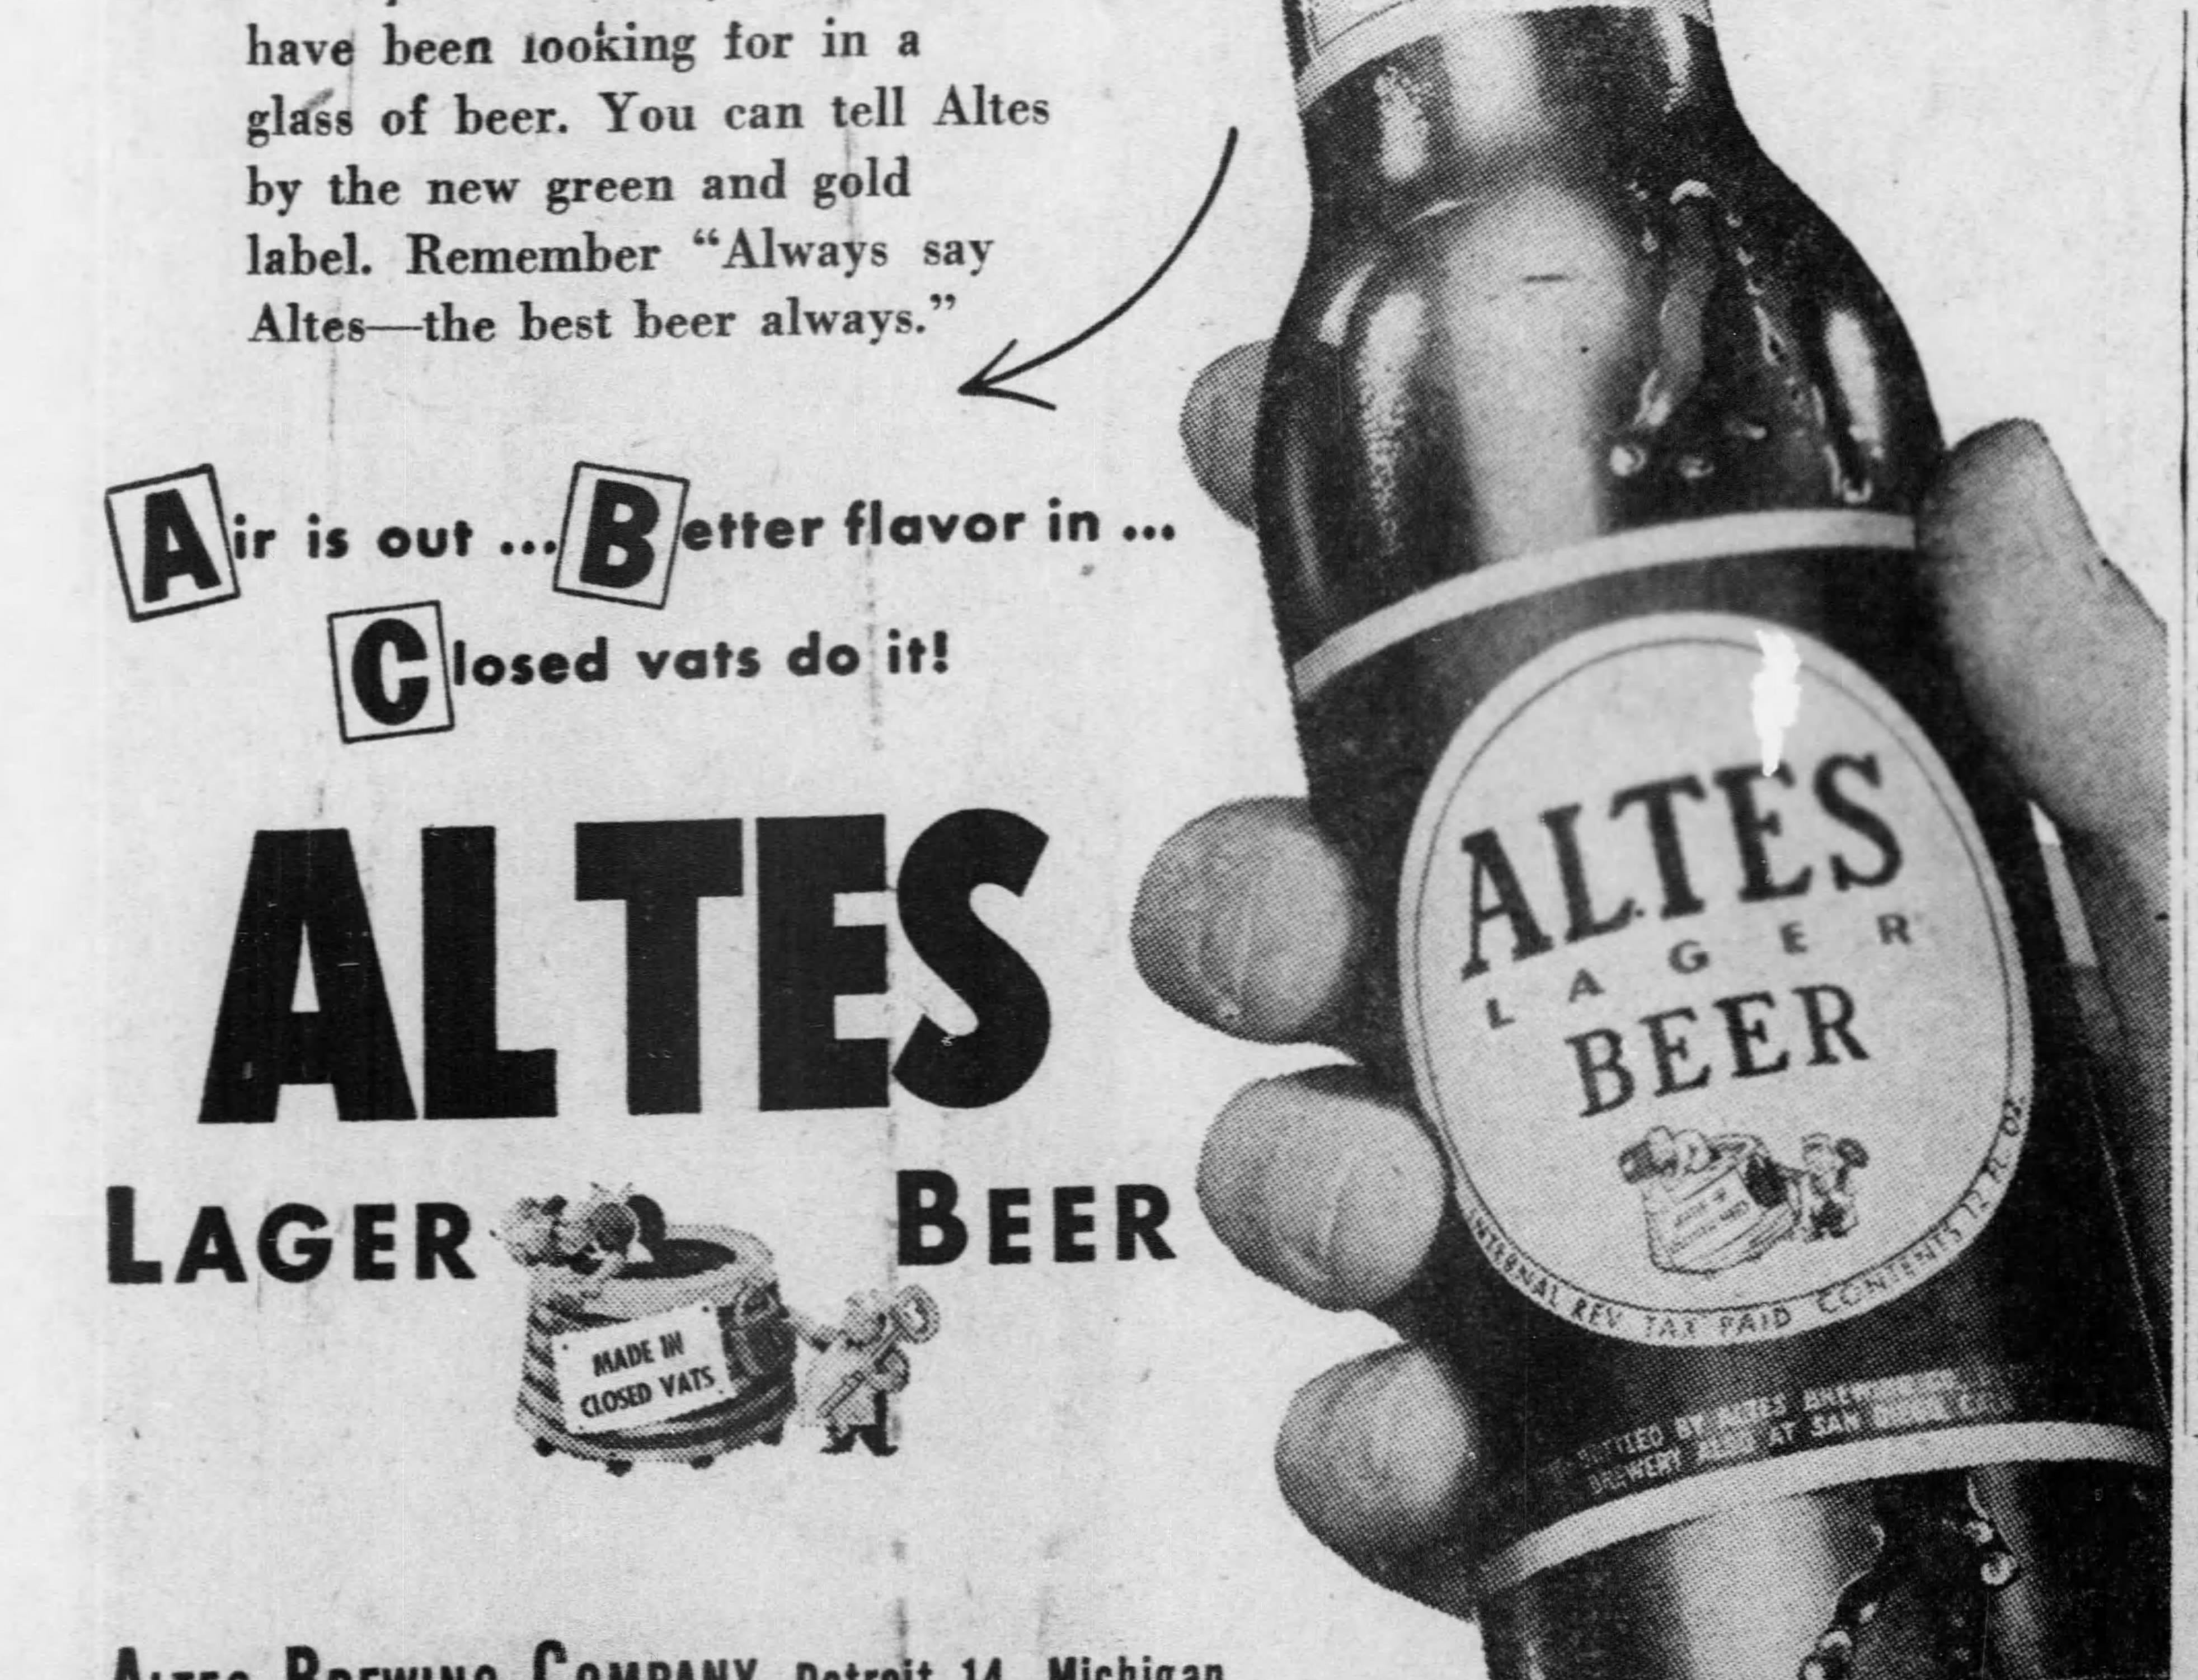 An ad for Altes Lager published in the Free Press on Oct. 15, 1949.